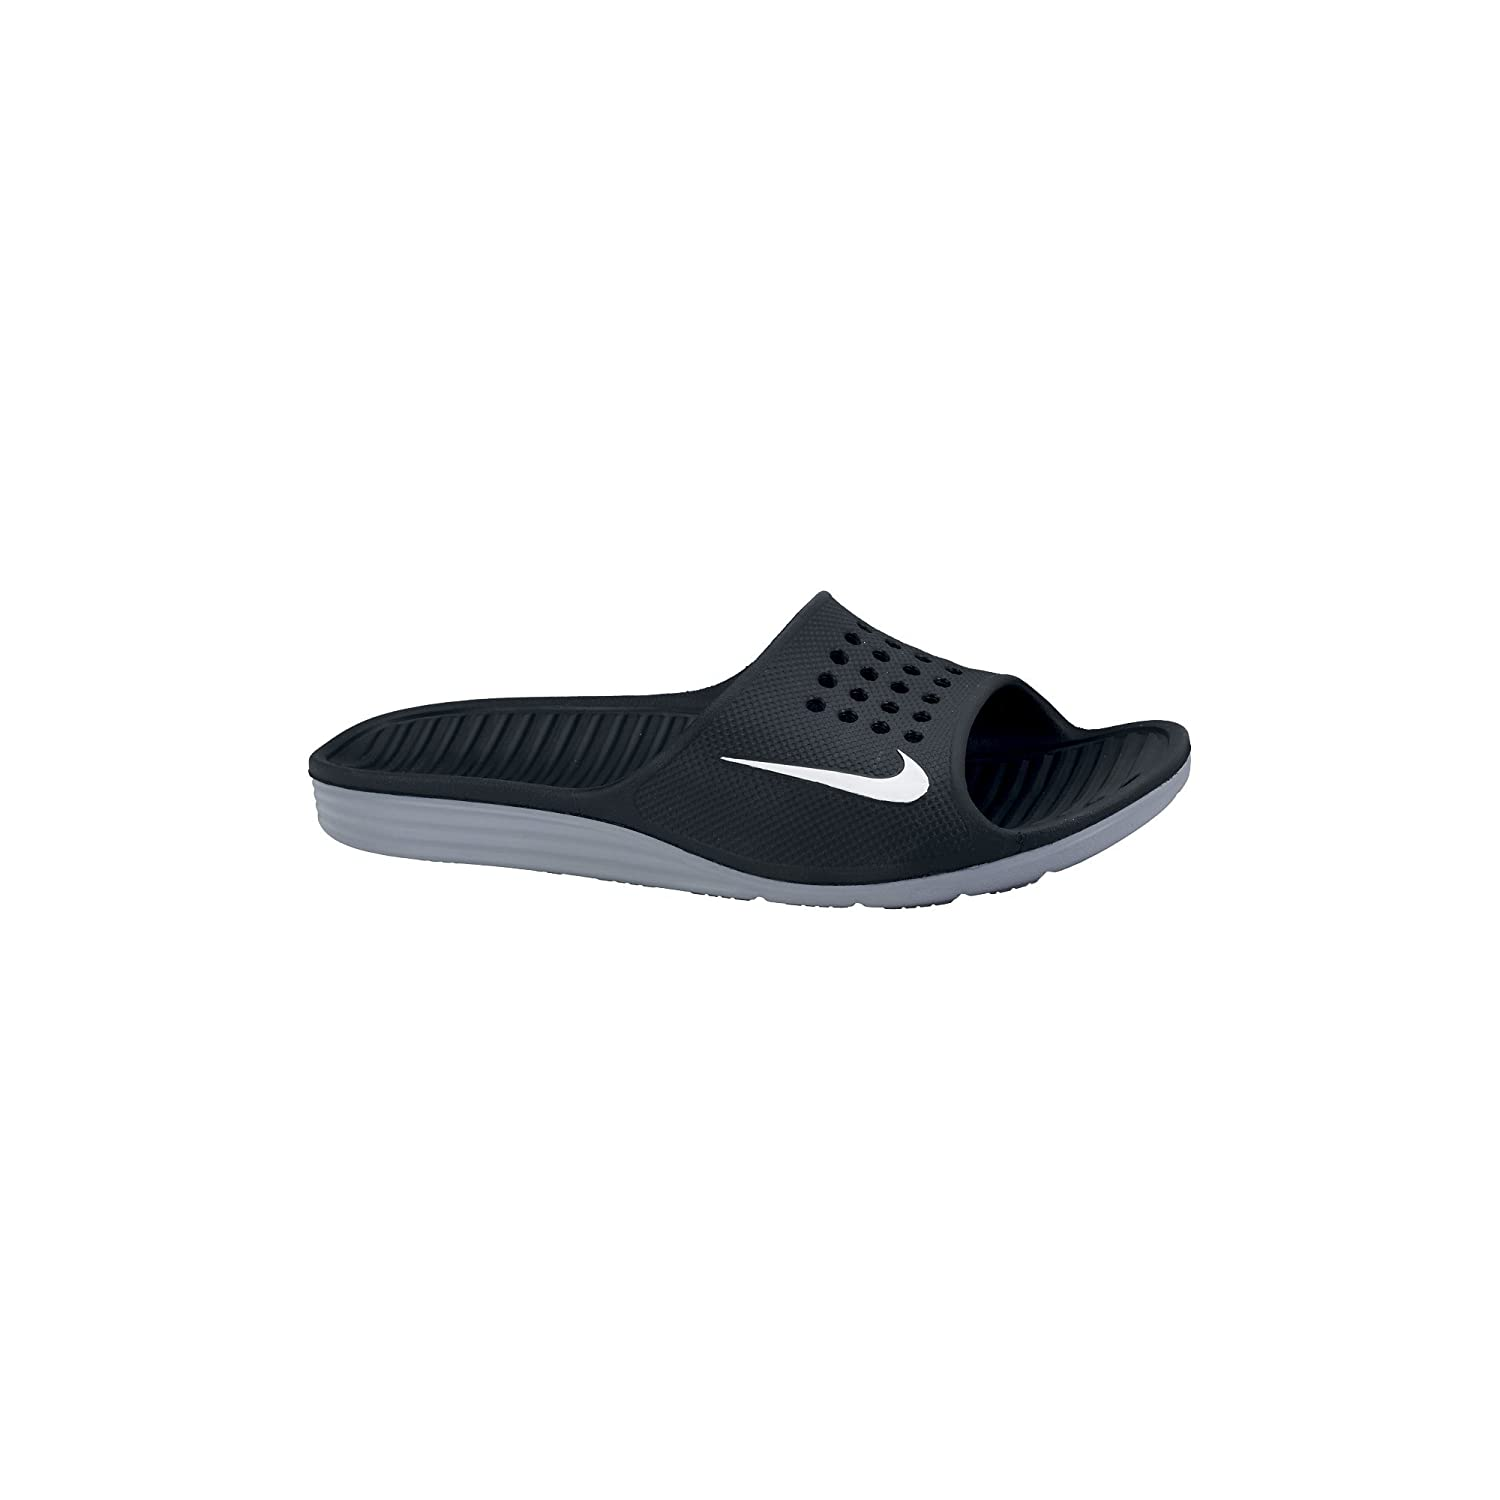 e3987add702928 Nike Men s Solarsoft Sandal Black White Size 15 M US  Buy Online at Low  Prices in India - Amazon.in